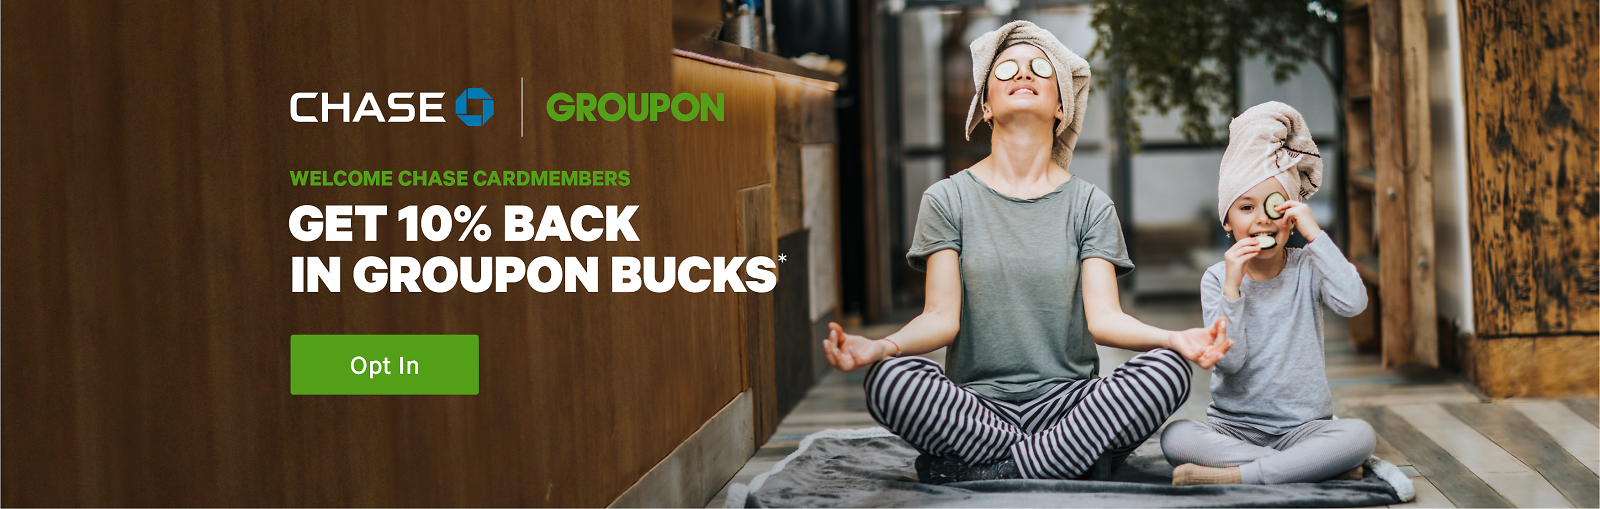 10% Back On Groupon Purchases for Chase Card Members